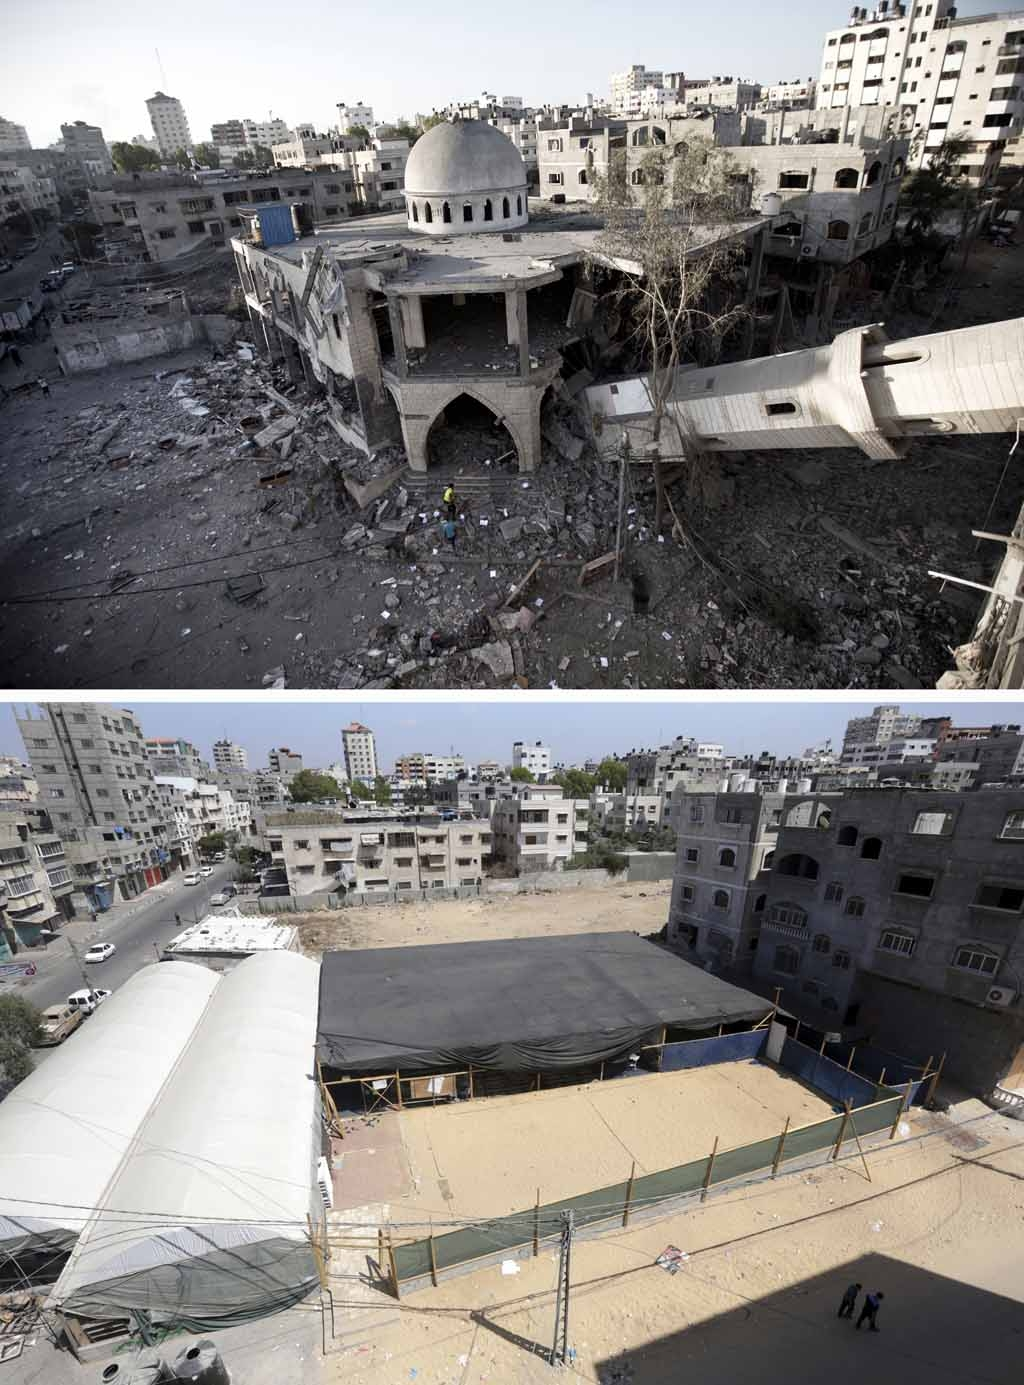 A collapsed minaret of a destroyed mosque in Gaza City on July 30, 2014, and the same place